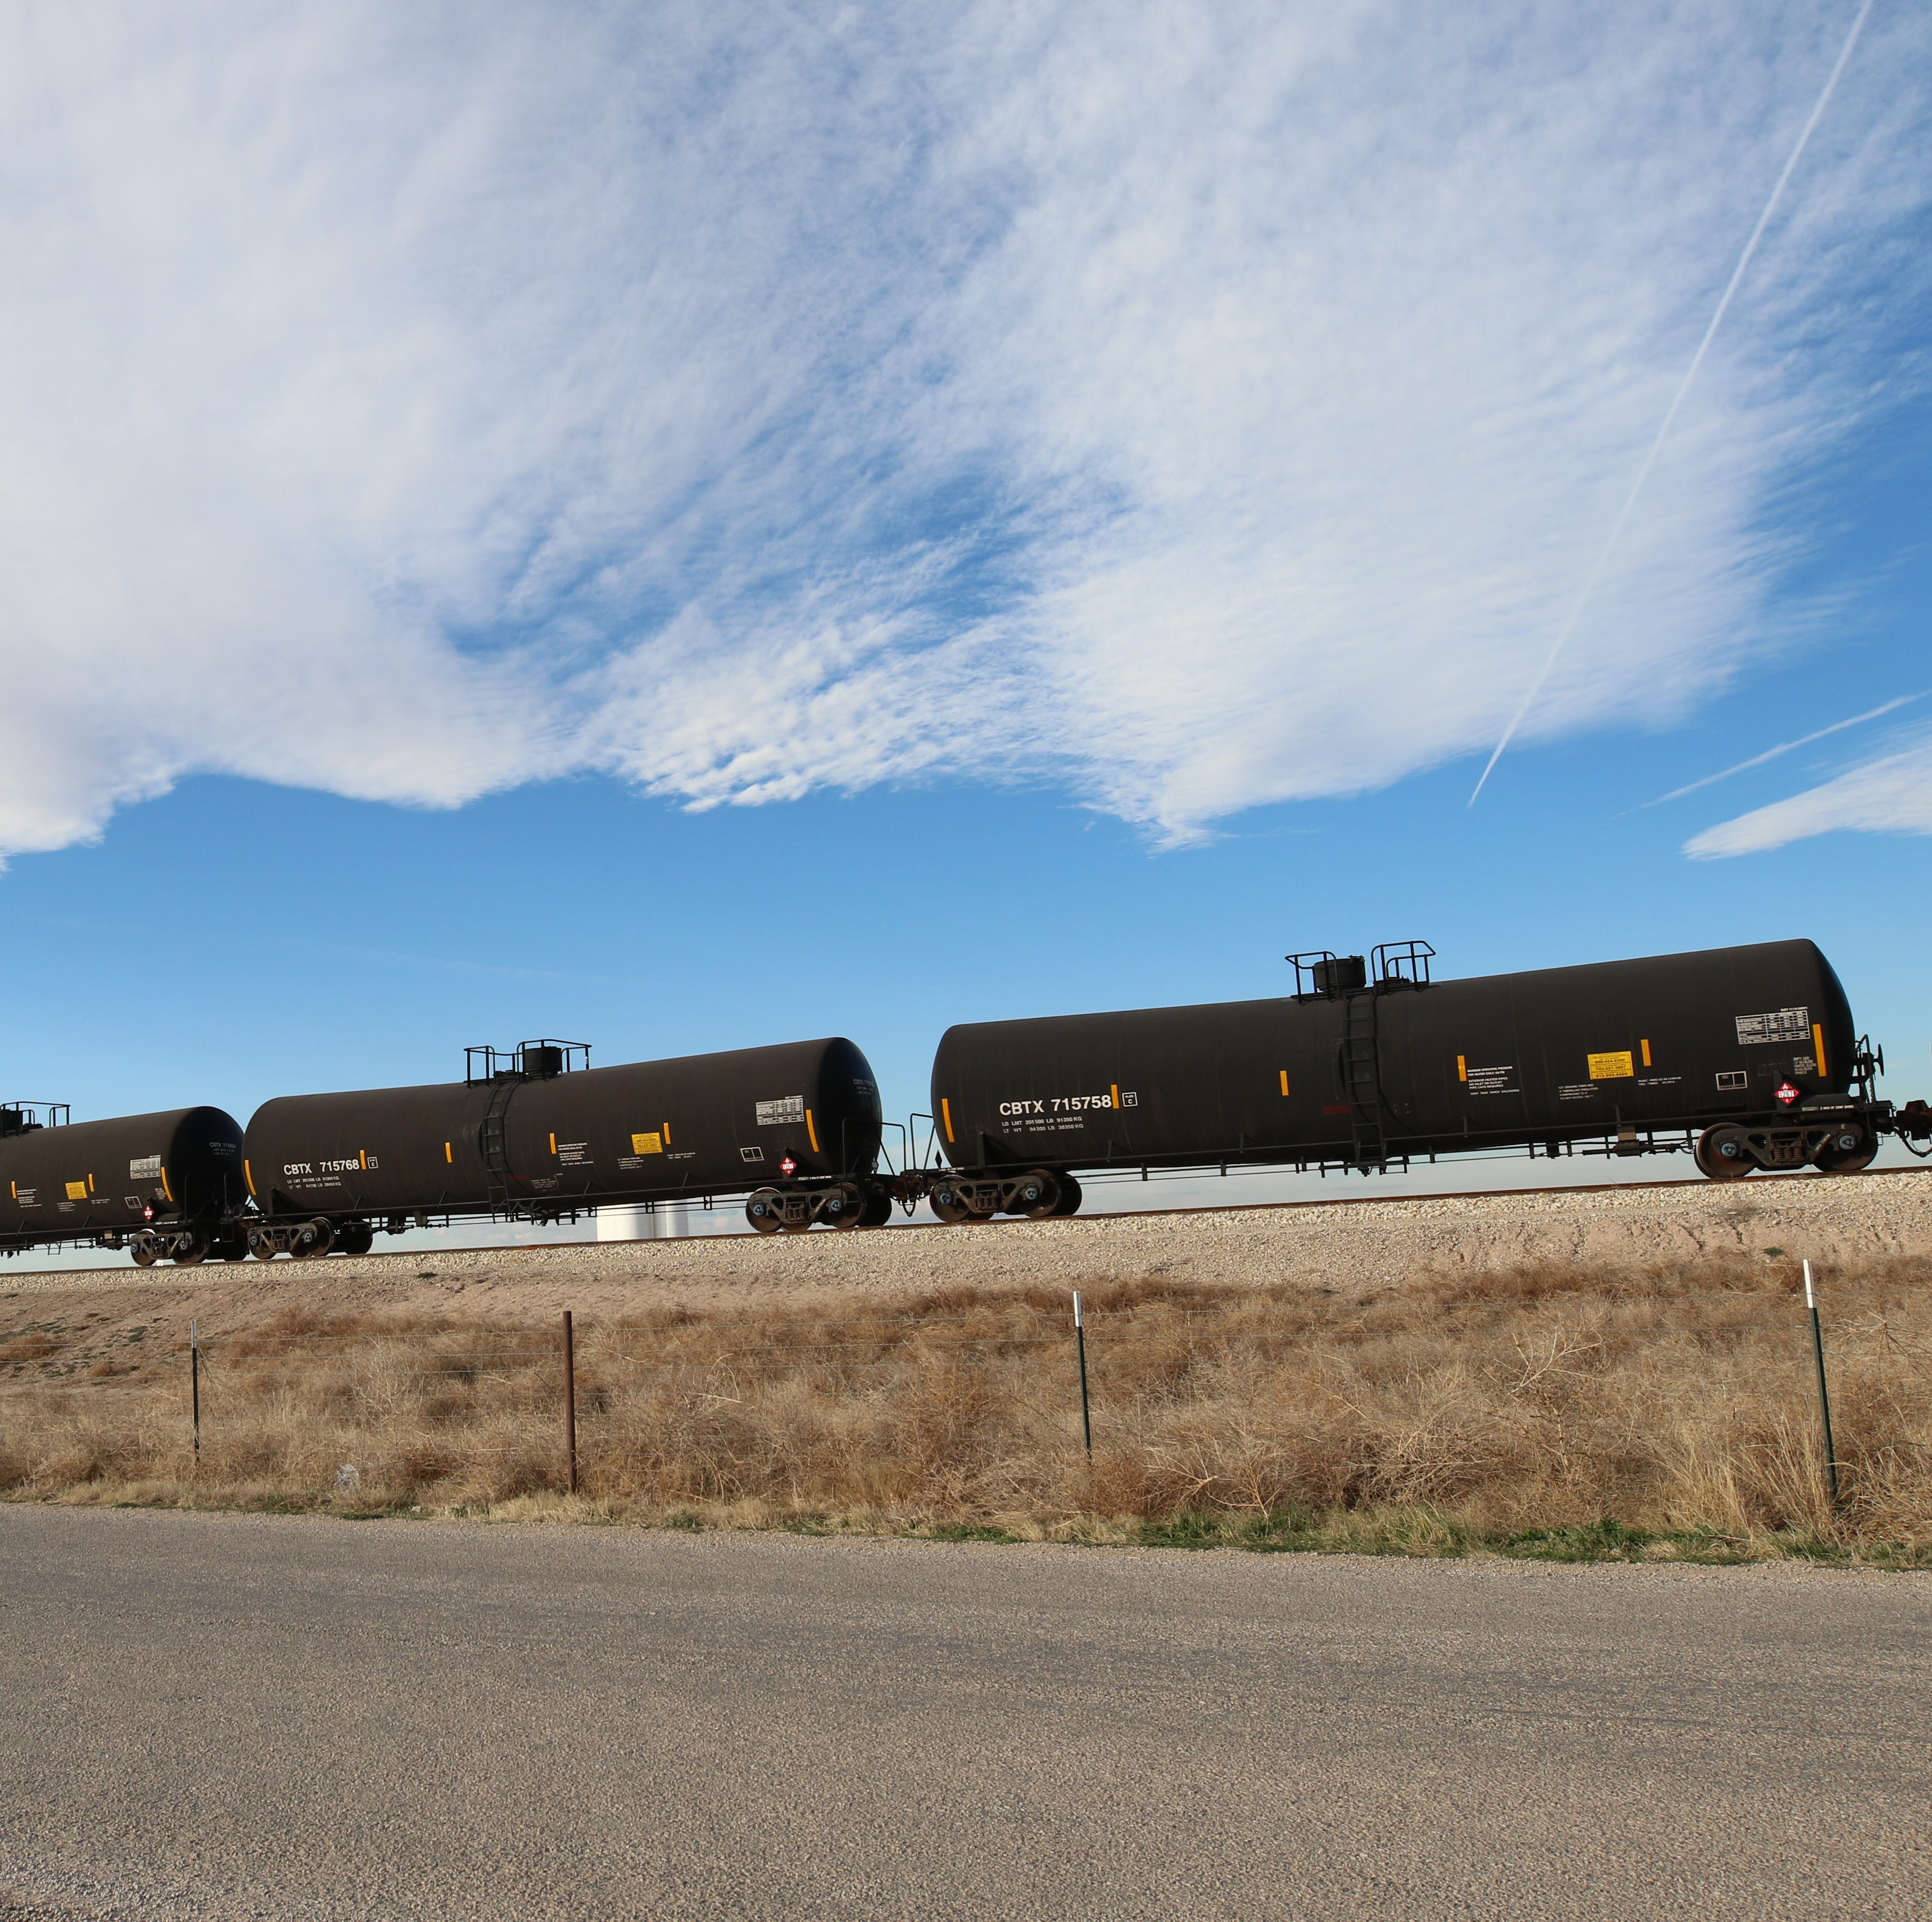 Railroad industry surges during oil boom in southeast New Mexico